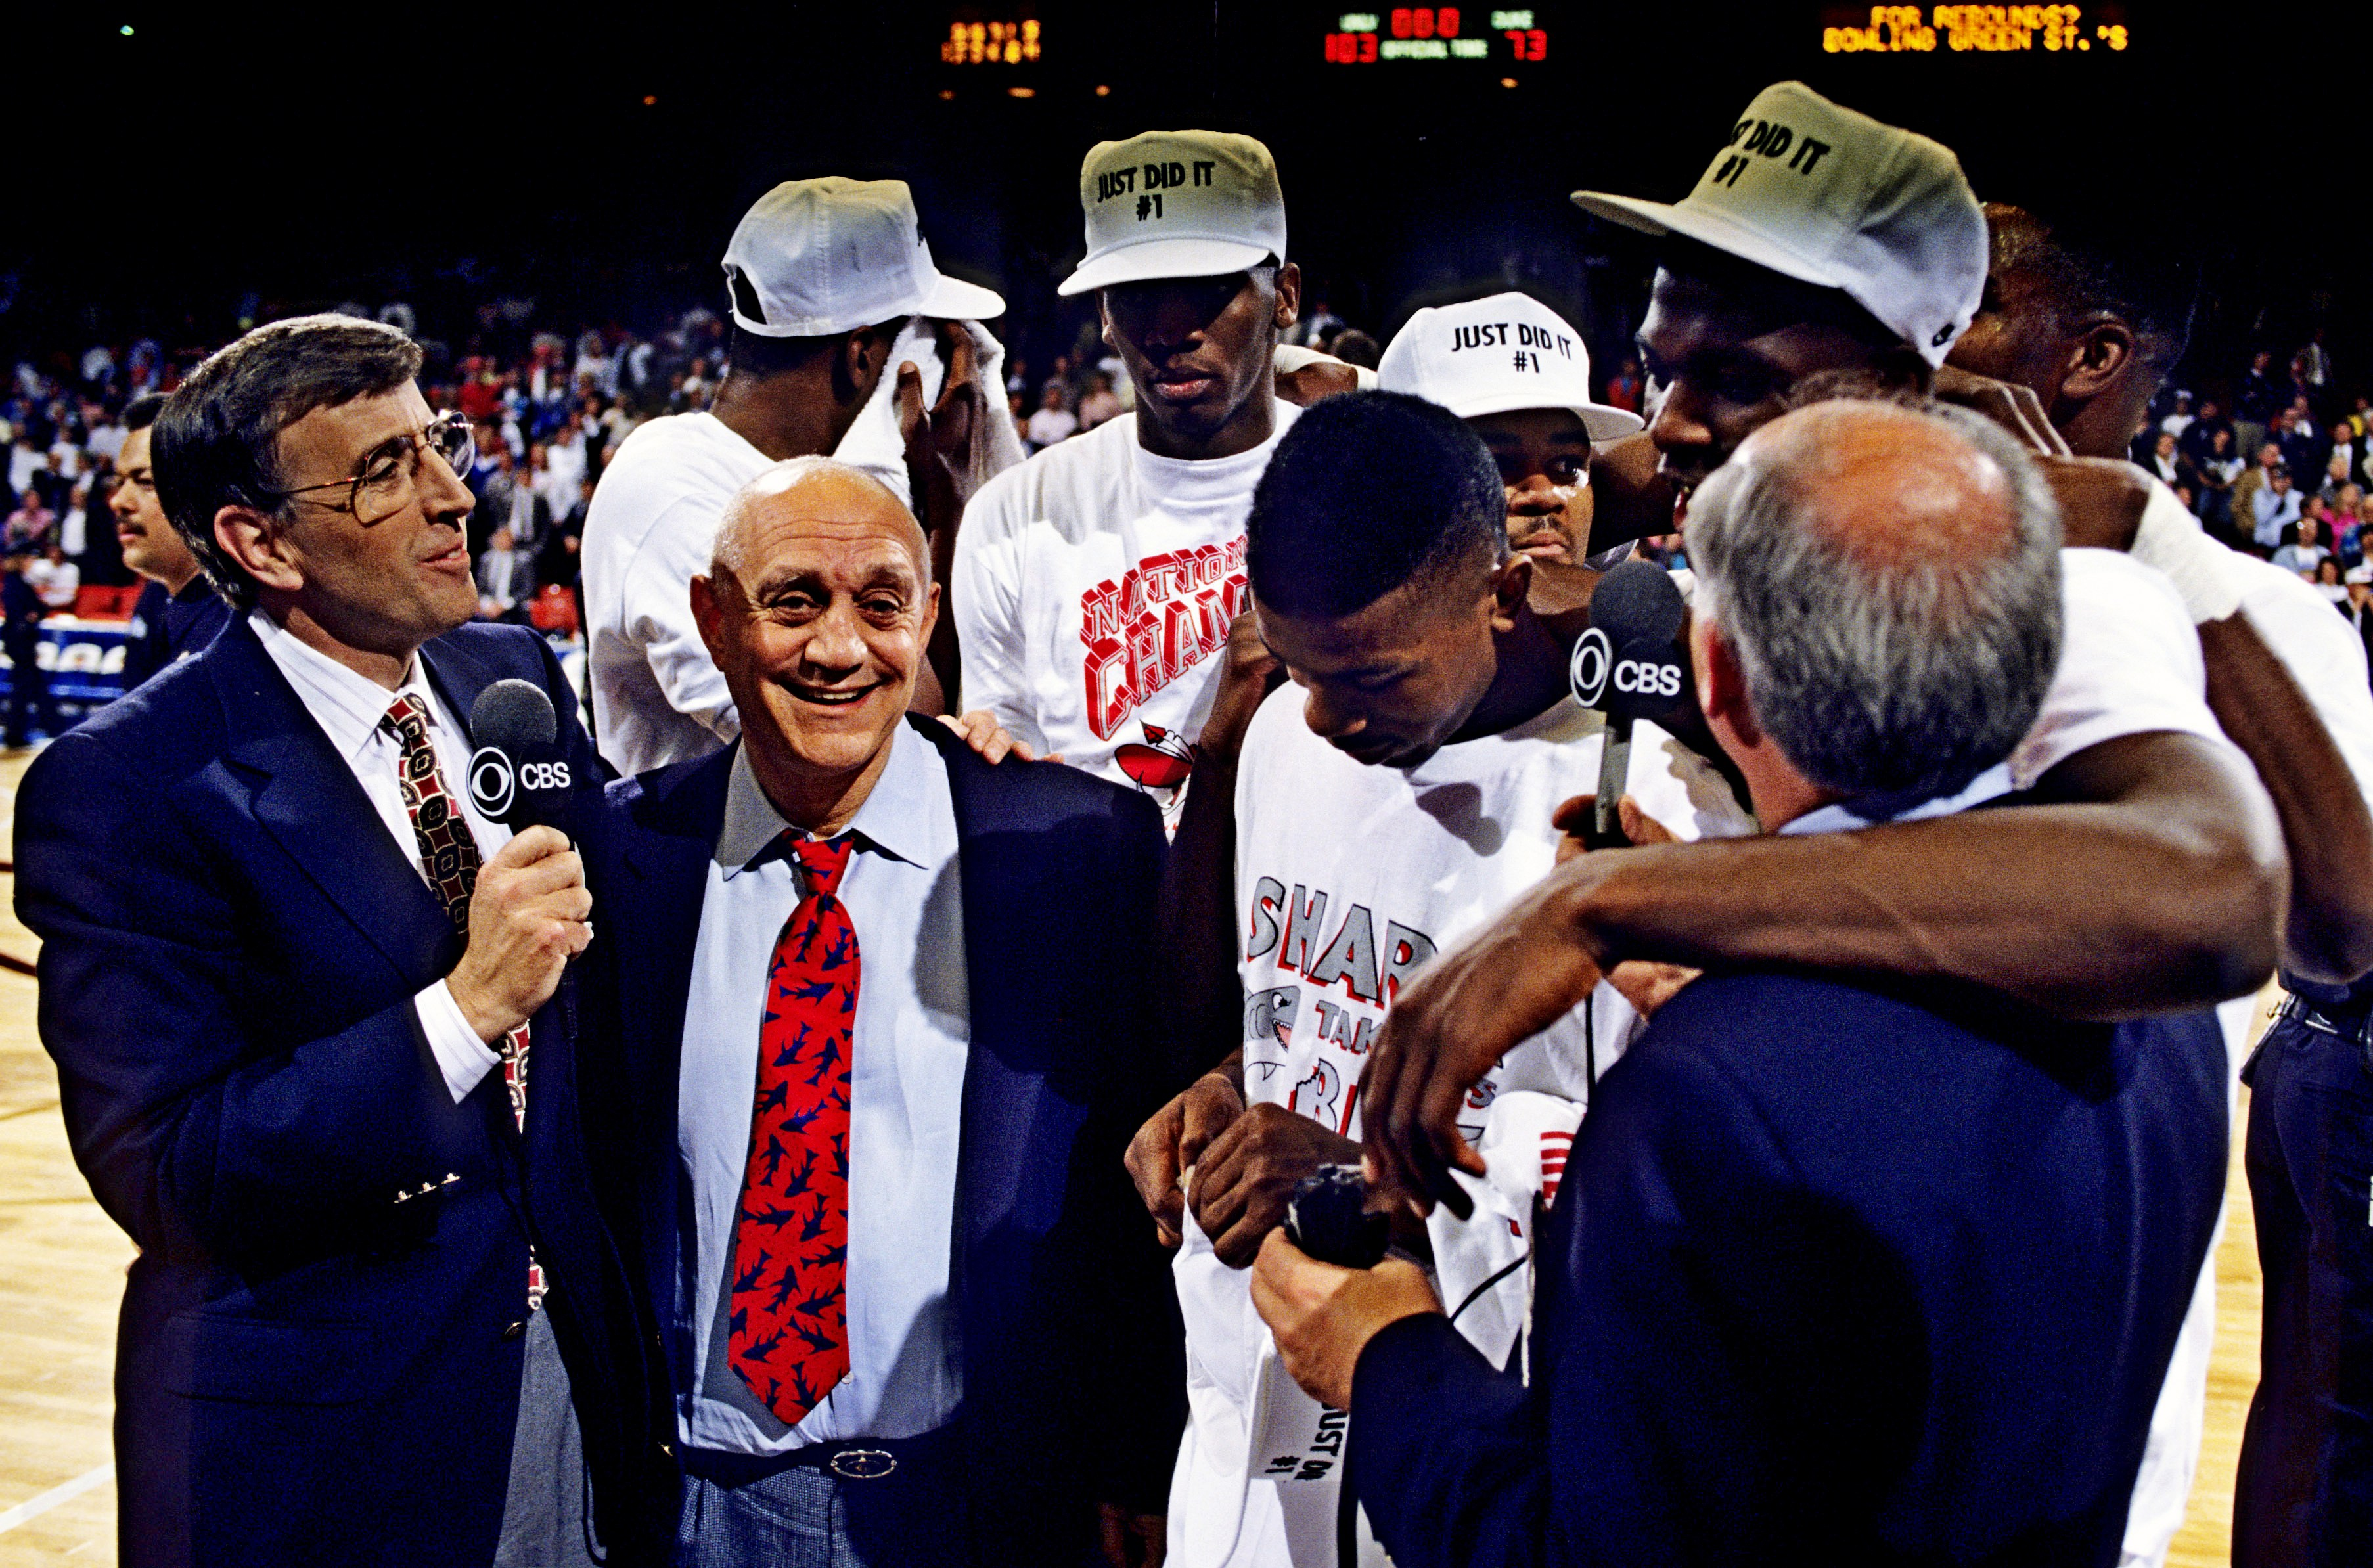 The Greatest College Basketball Team Ever